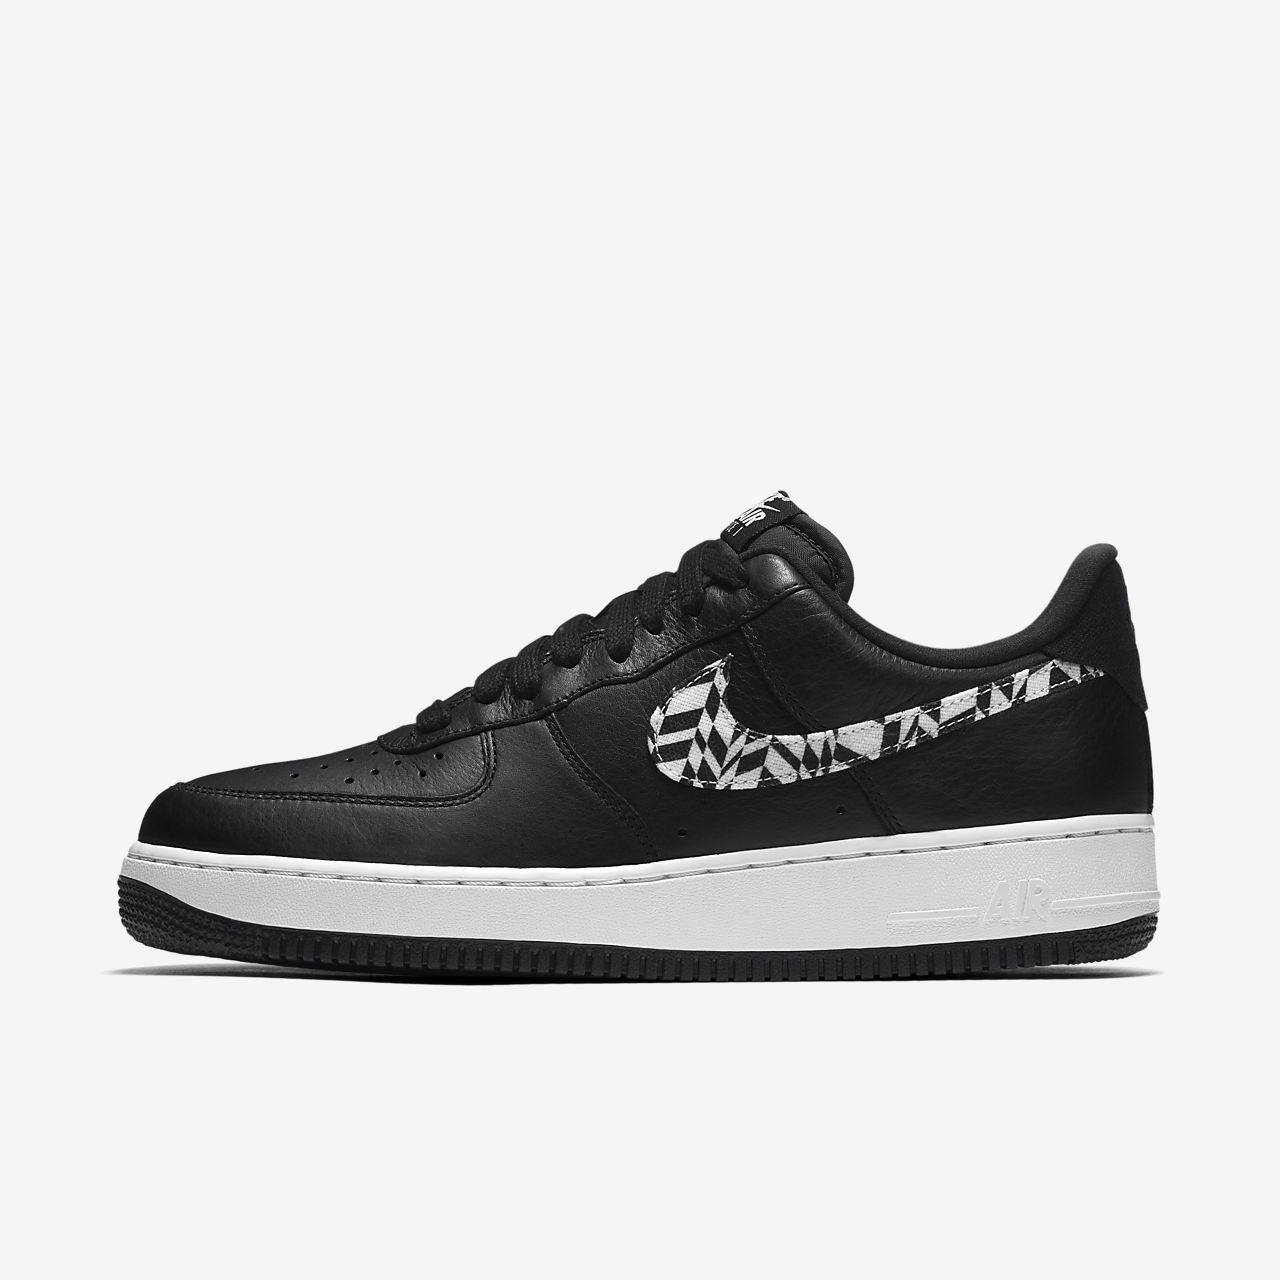 Chaussure Nike Air Force 1 Premium pour Homme